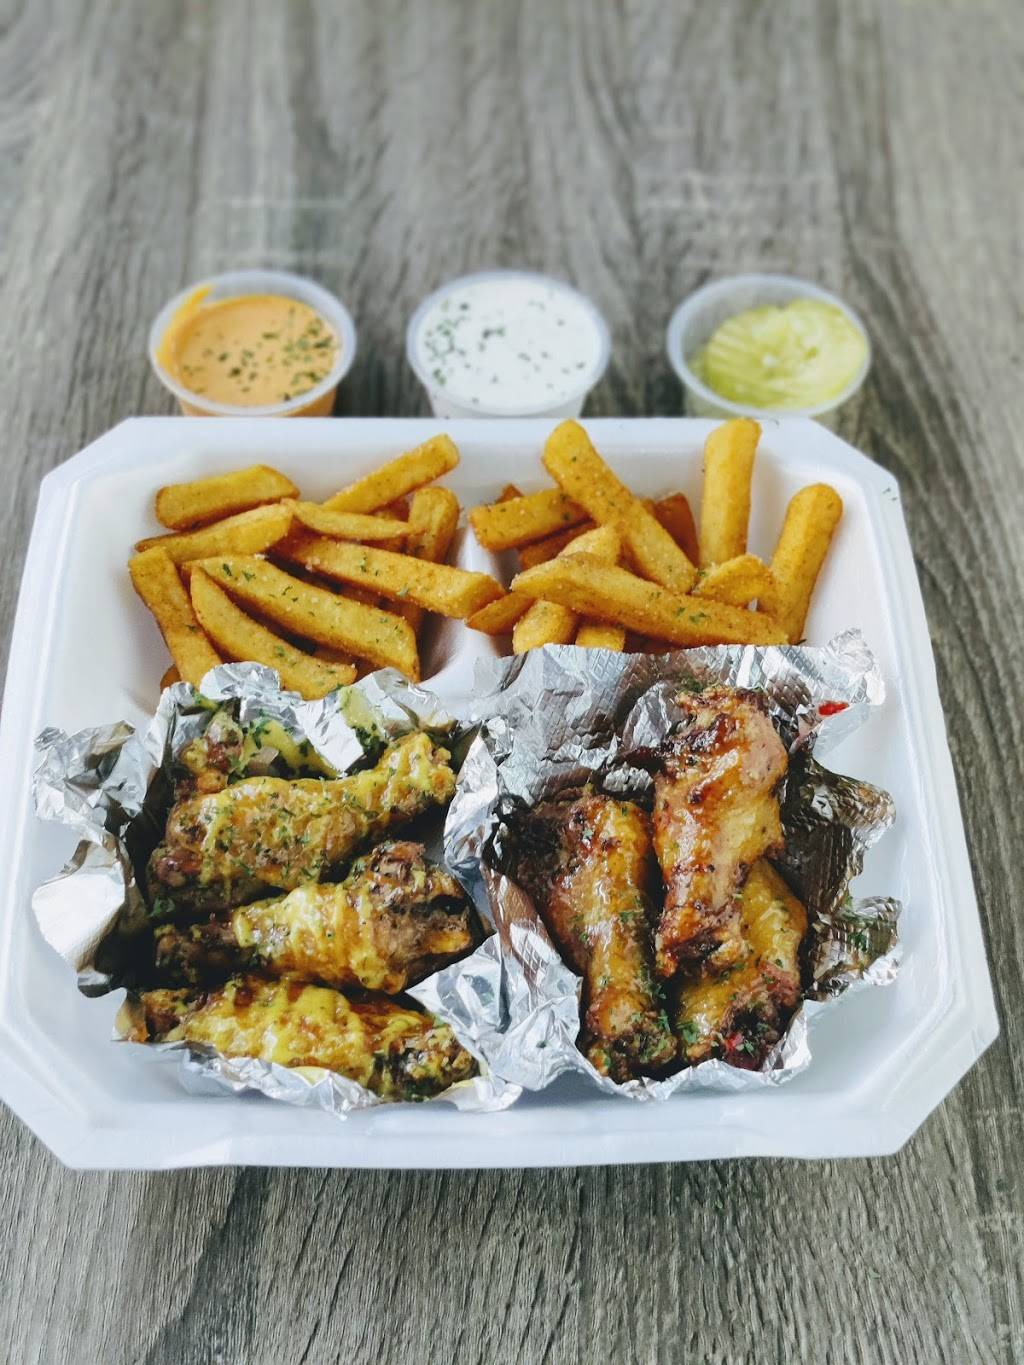 Cloud 9 Wings and More   restaurant   6199 Griggs Rd, Houston, TX 77023, USA   8329809464 OR +1 832-980-9464